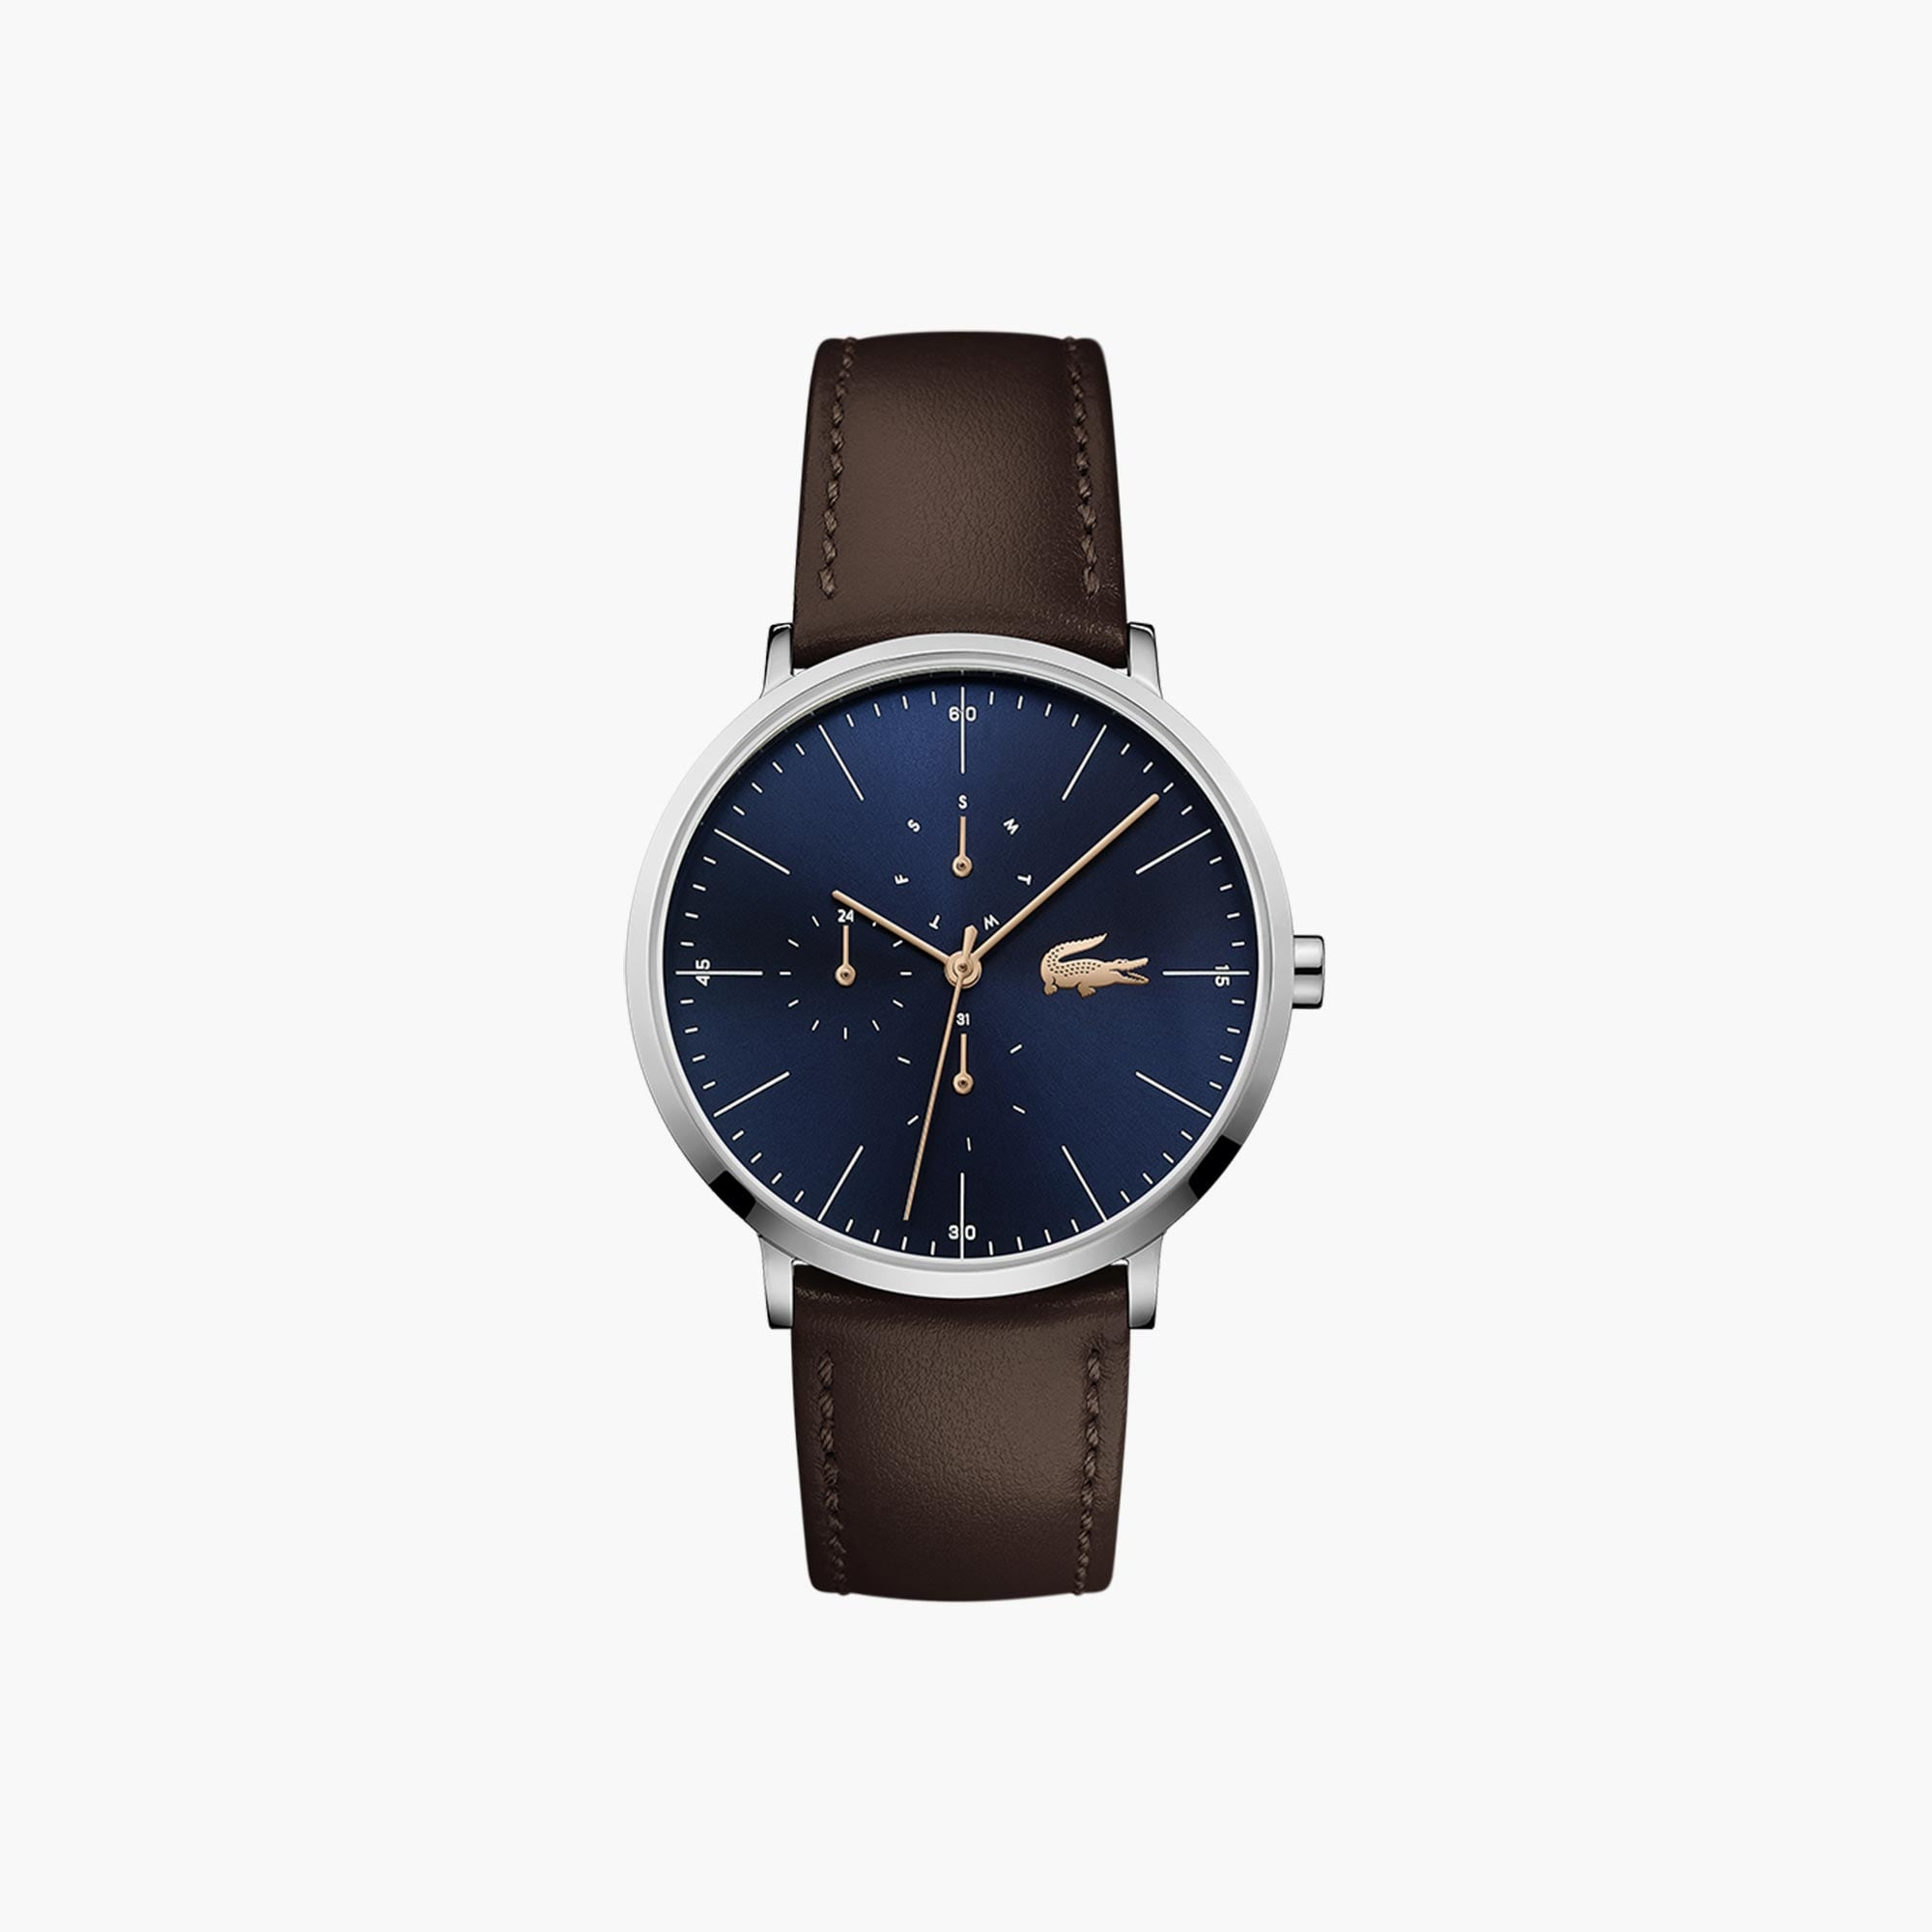 Men's Moon Multifunctions Ultra Slim Watch with Brown Leather Strap